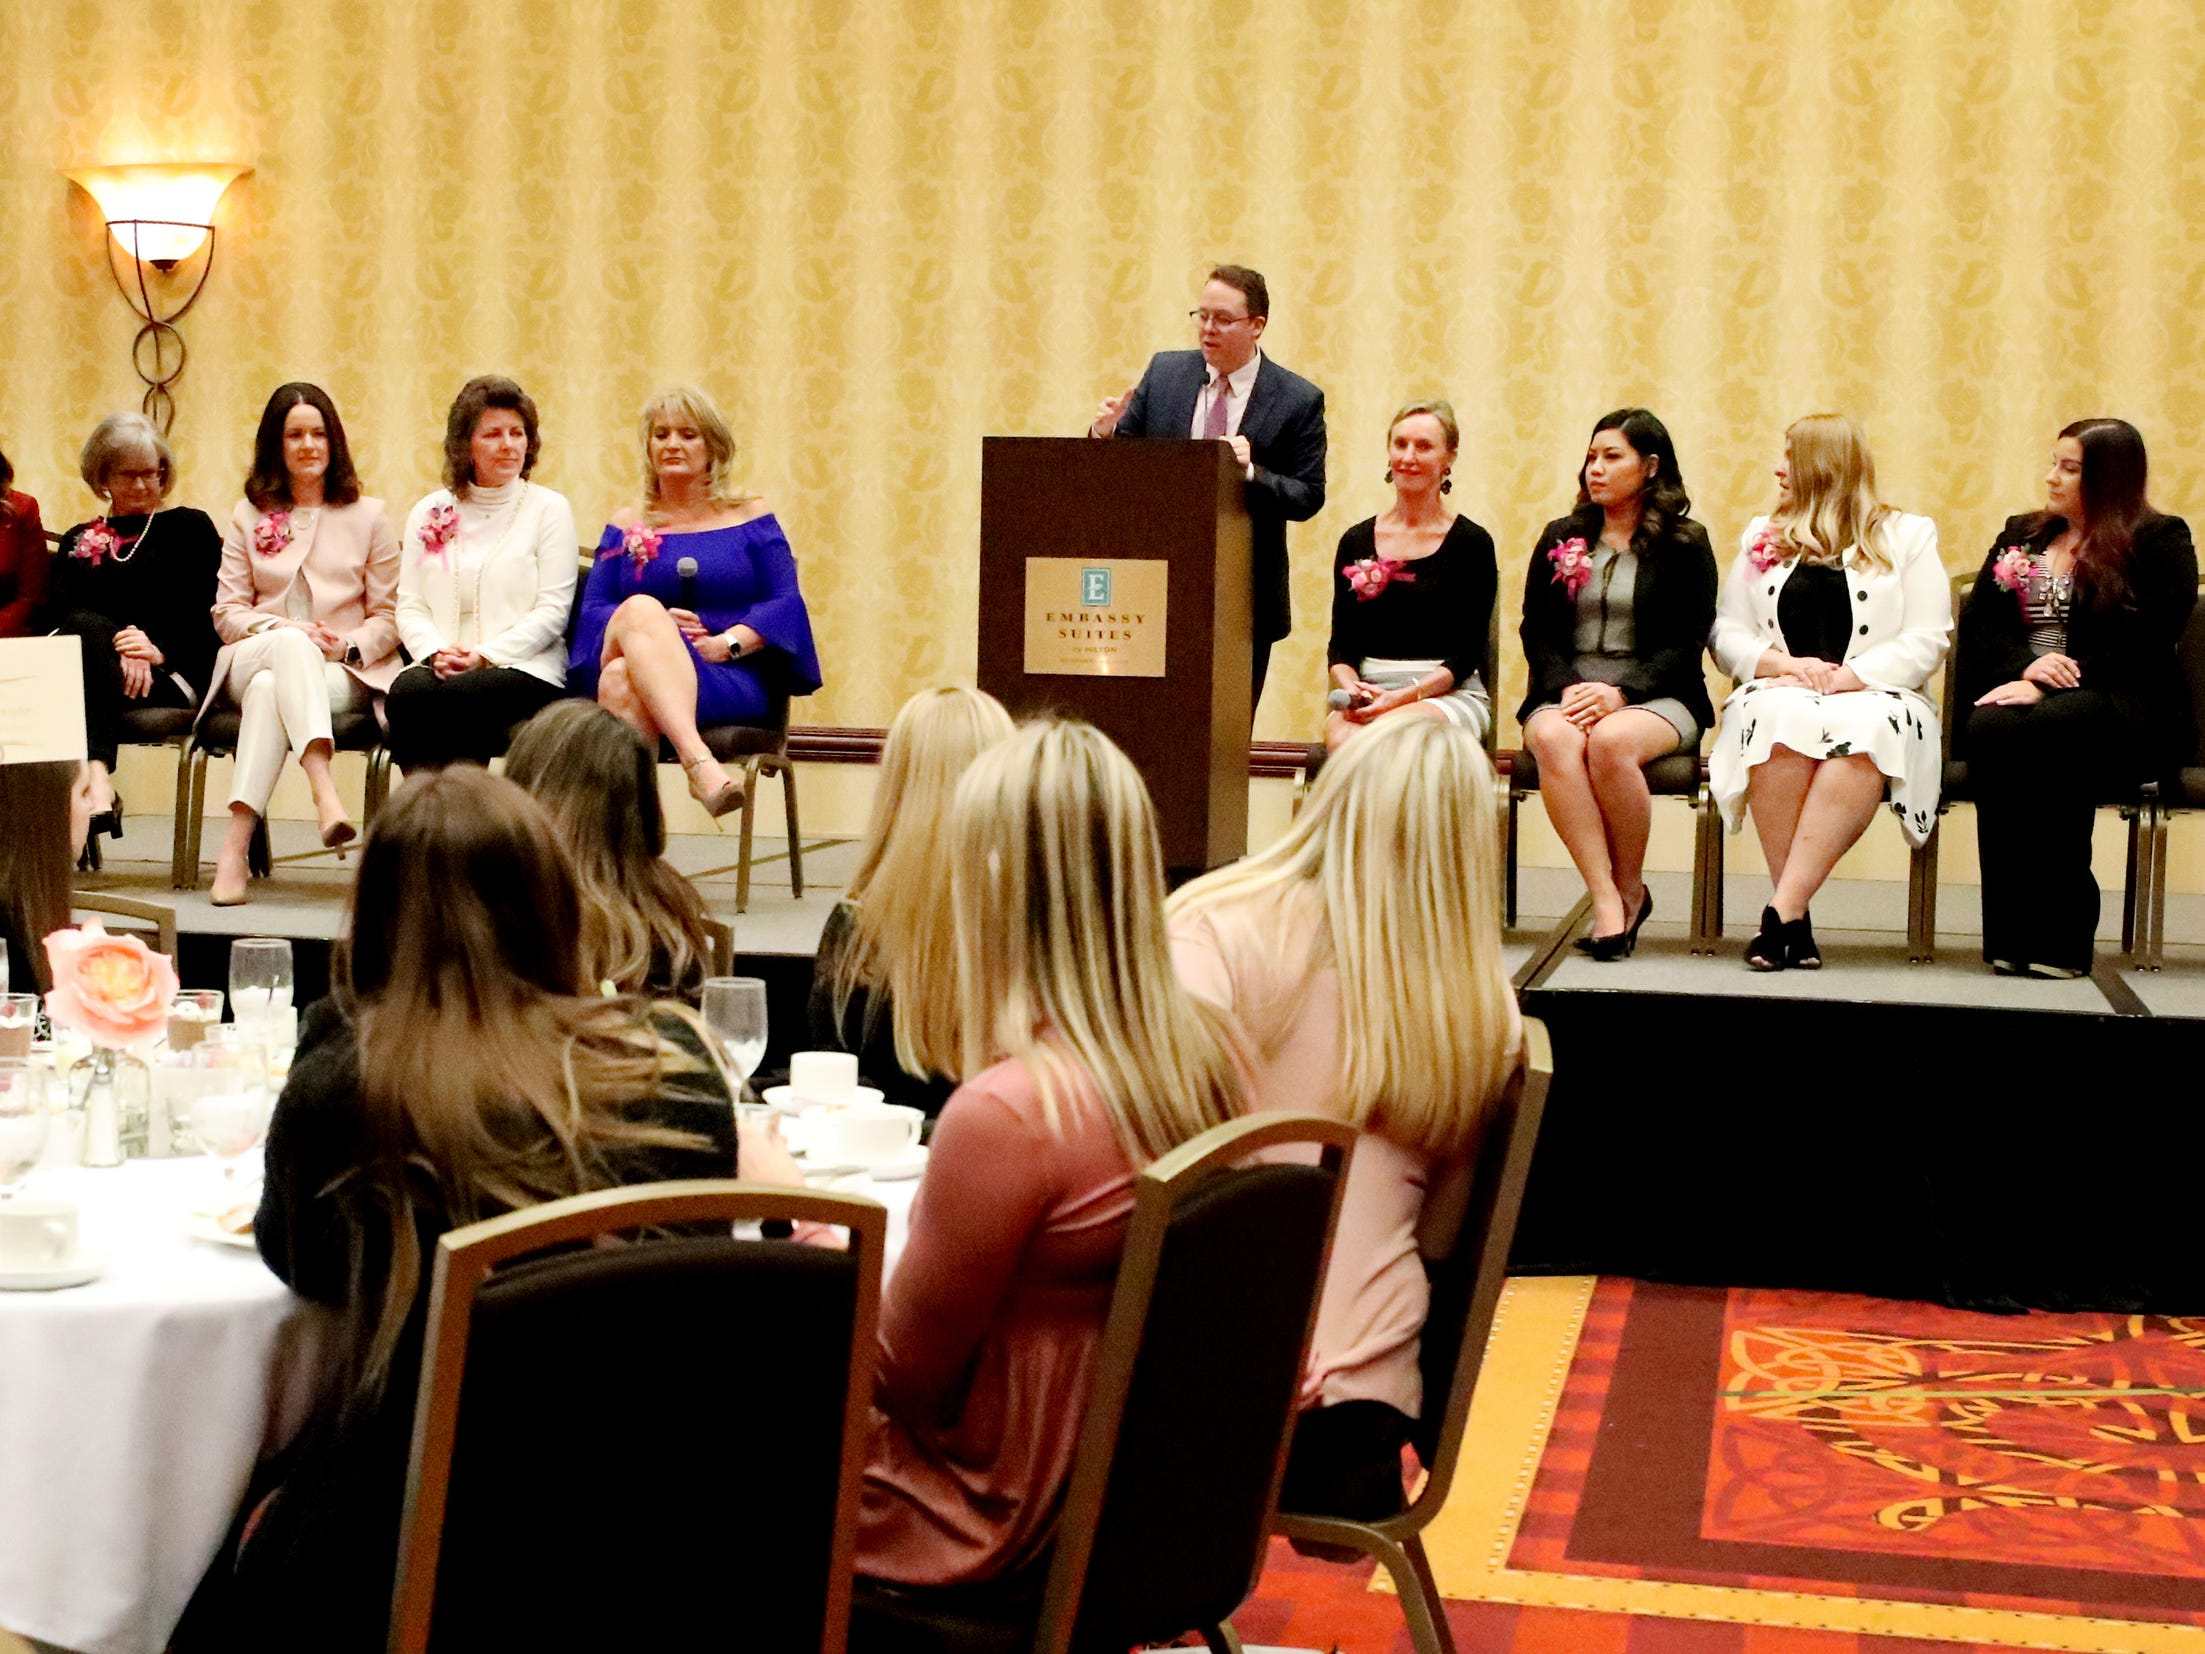 Brian Barry, Publisher of the Nashville Lifestyles and Murfreesboro Magazine, mc's Murfreesboro Magazine's 2019 Women in Business Luncheon on Tuesday, March 12, 2019, at the Embassy Suites Murfreesboro, and asks questions of the 9 other women honored during the event.